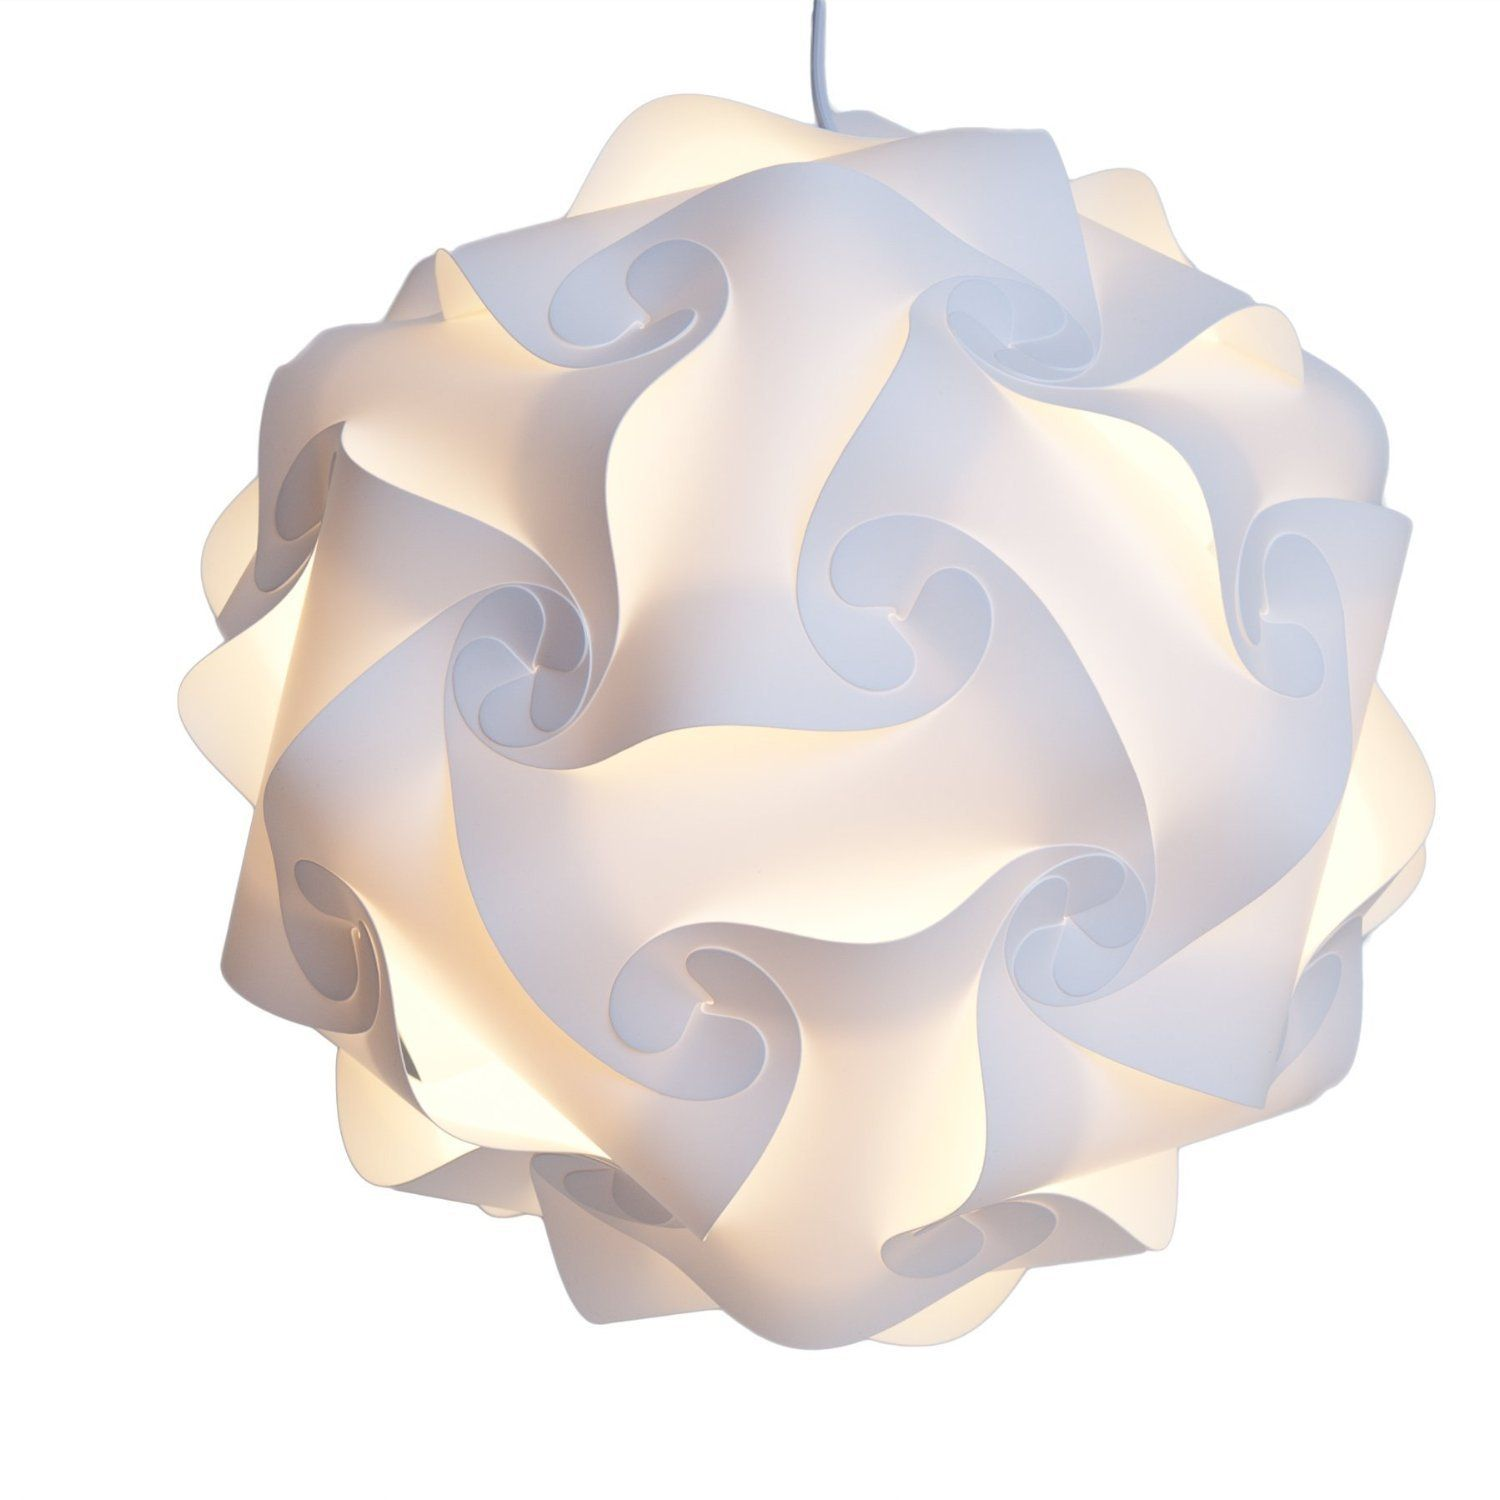 Merveilleux Puzzle Lamp Modern Pendant Jigsaw Lighting  Assemble IQ Lamp Shade With  Lantern Cord  M